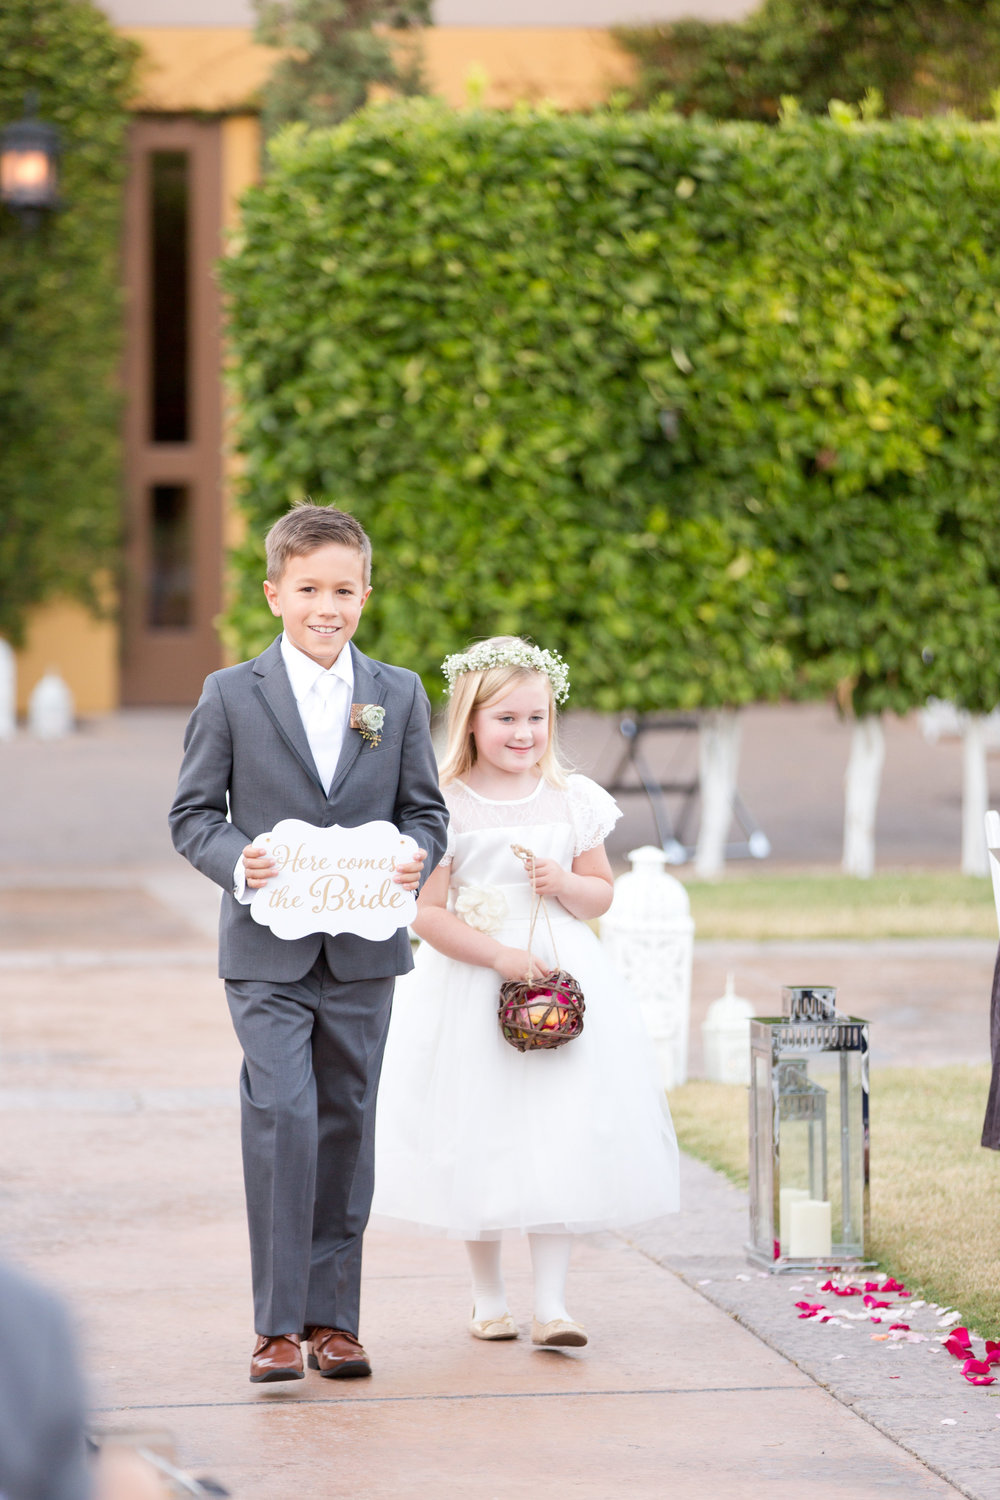 Phoenix-Scottsdale-Arizona-Wedding-Planner-Wedding-Venue-Destination-Wedding-Planner, Omni Montelucia weddings, sunset weddings, Arizona Sunset weddings, wedding details, bridal party, flower girl, ring bearer, ring bearer sign, wedding ceremony